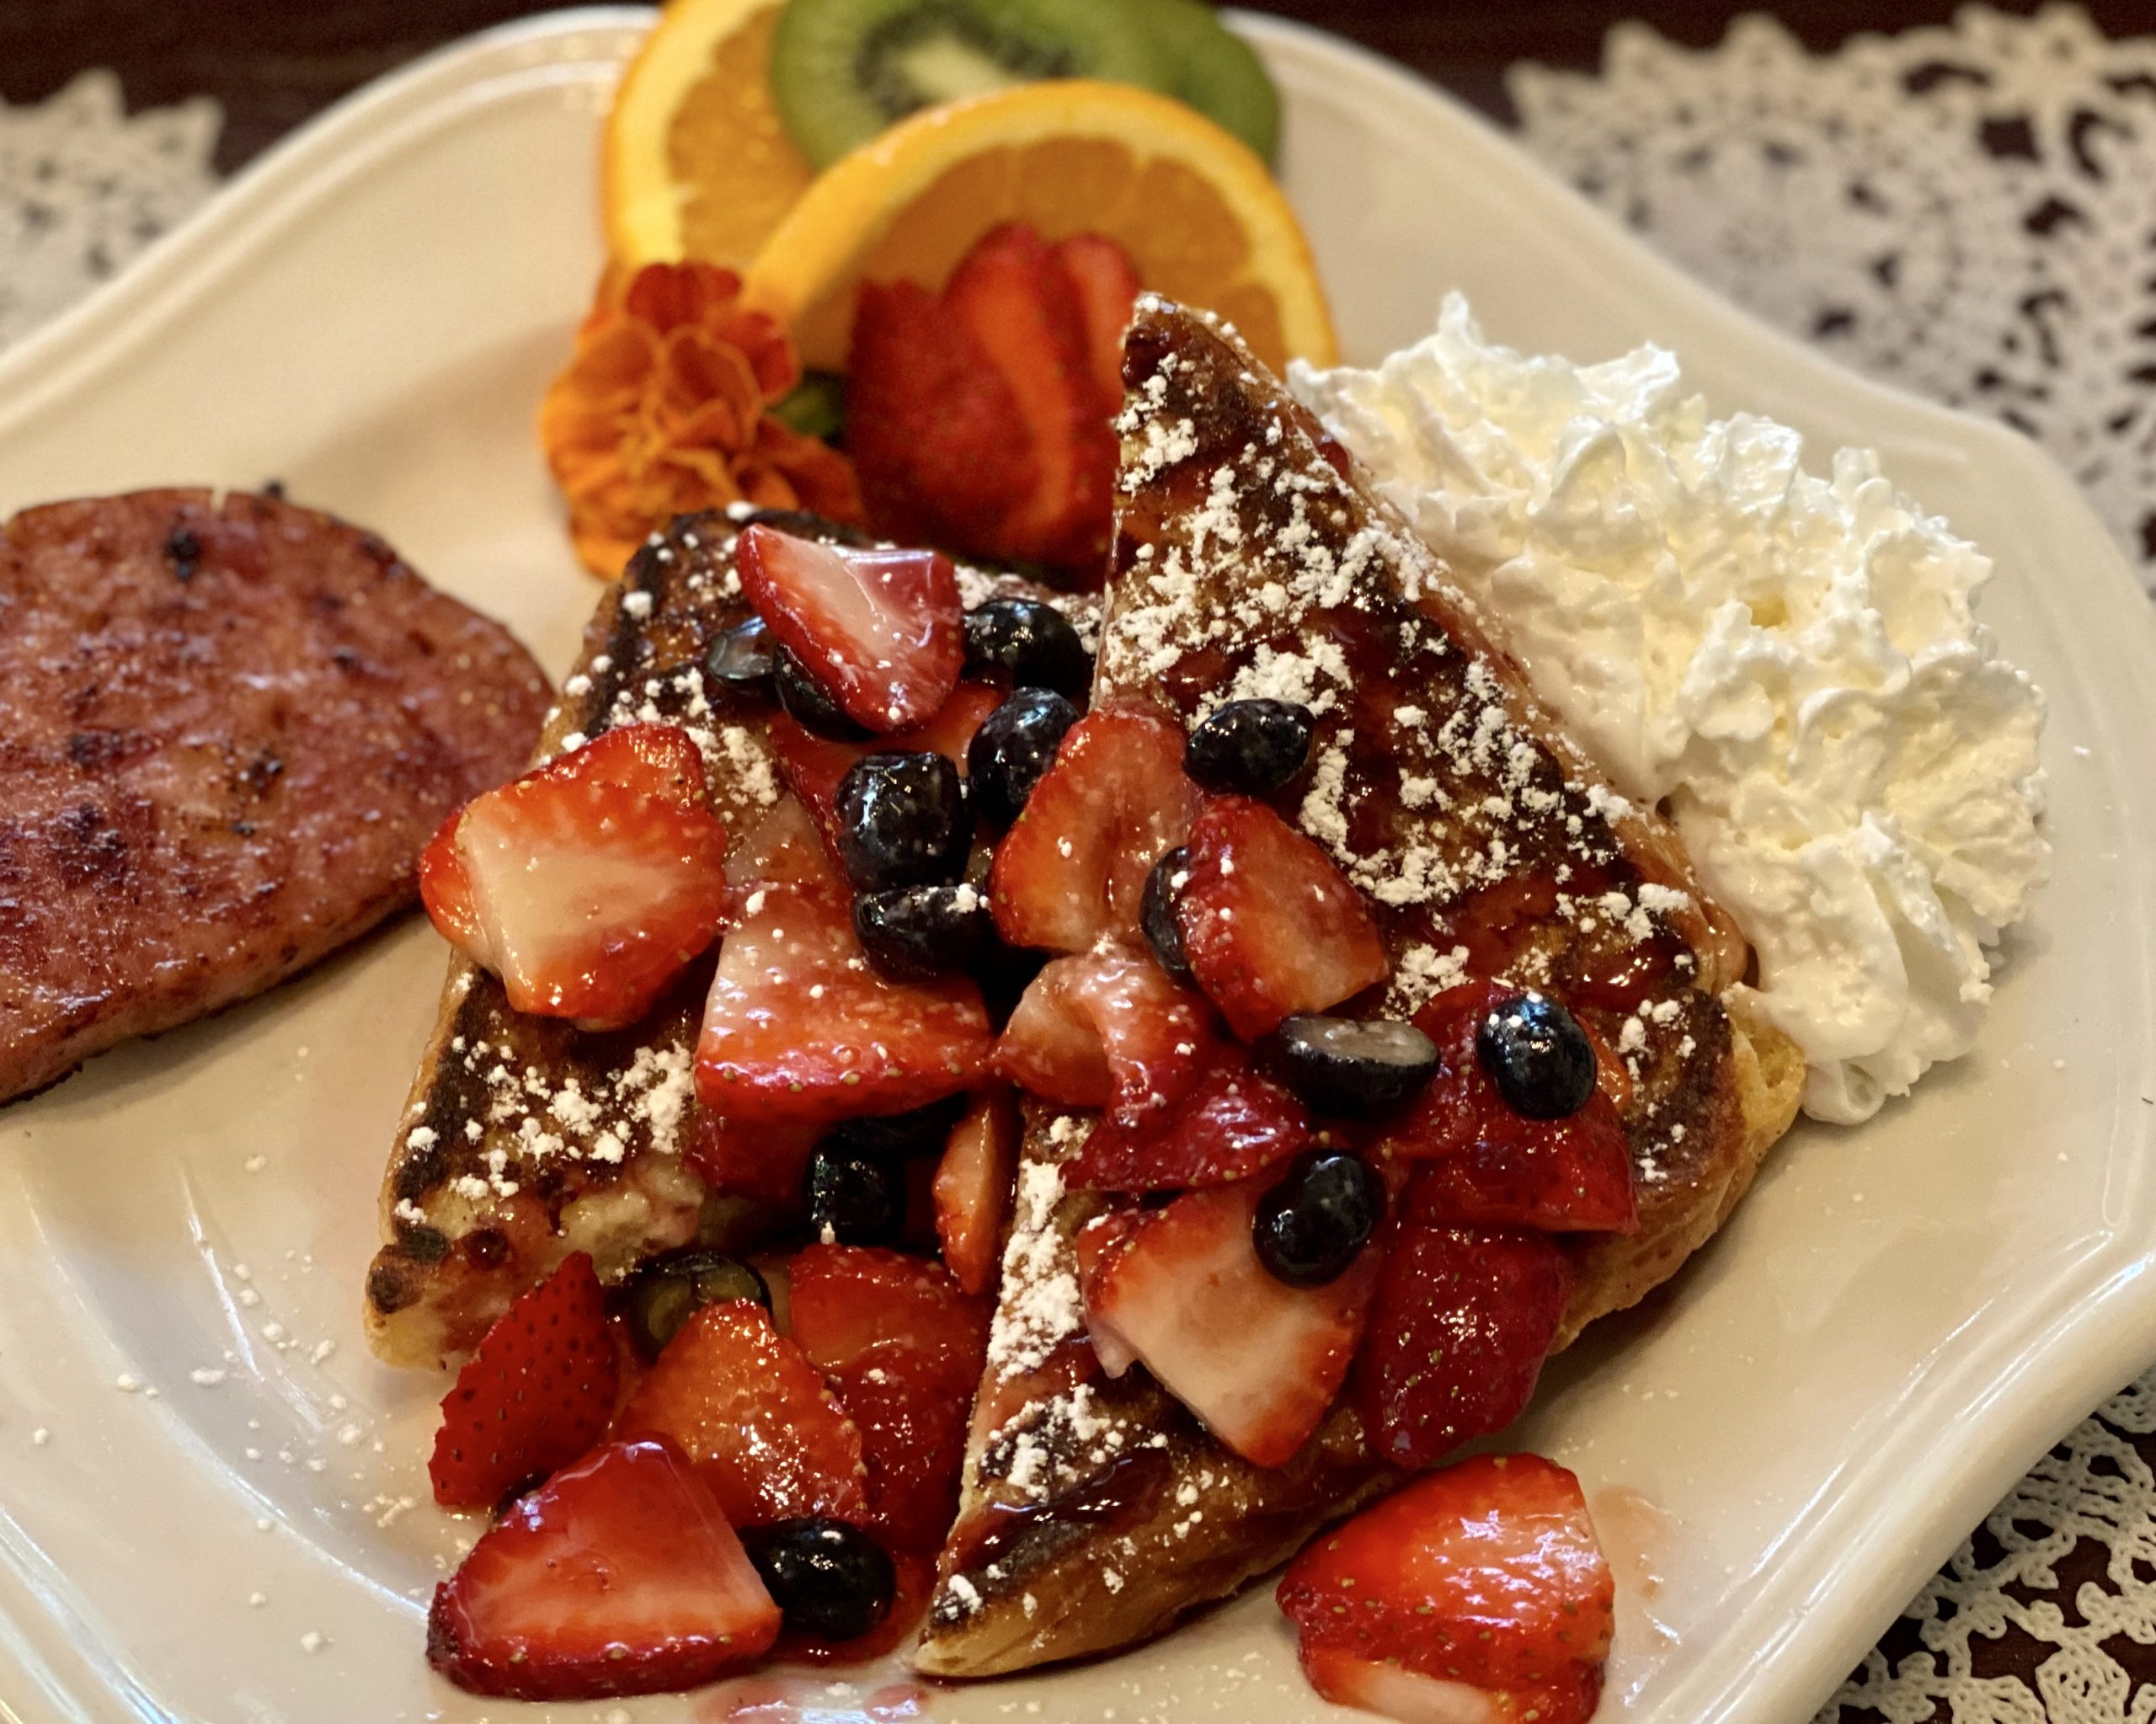 Stuffed French Toast with Berry Sauce